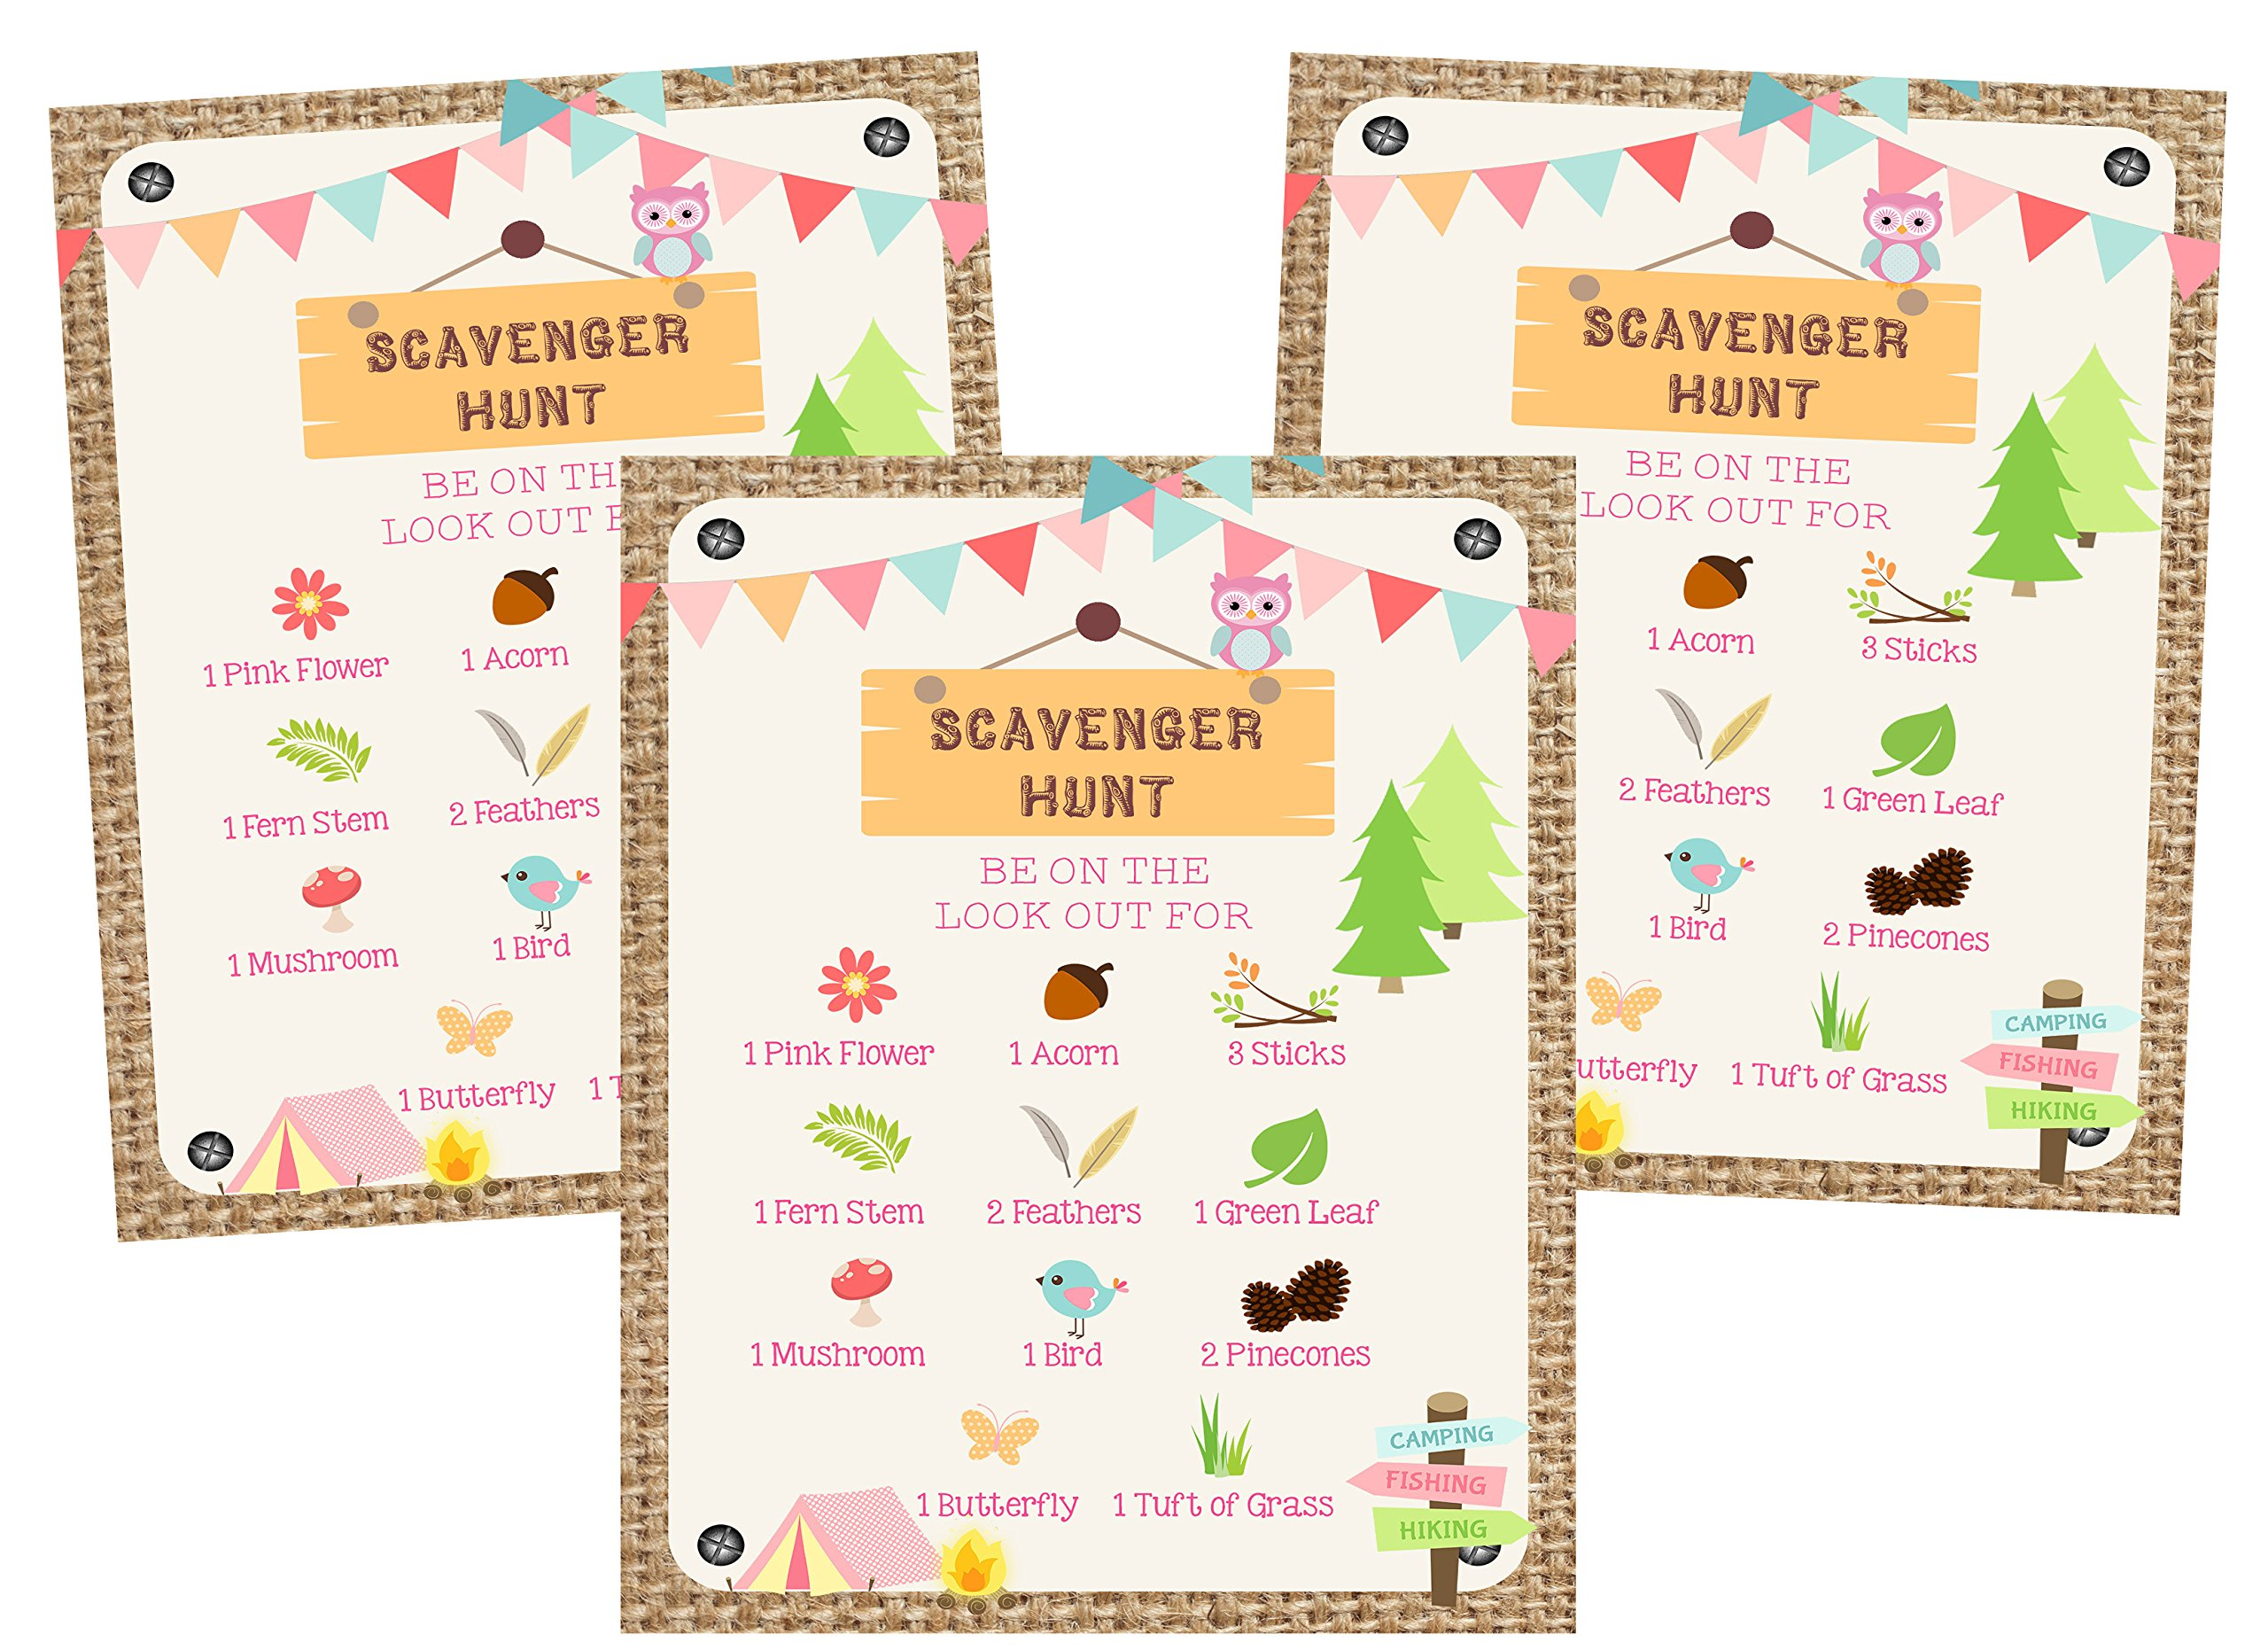 Glamping Girl Camping Pink Party Invitations Supply Decoration Decor (Scavenger Hunt Kit)